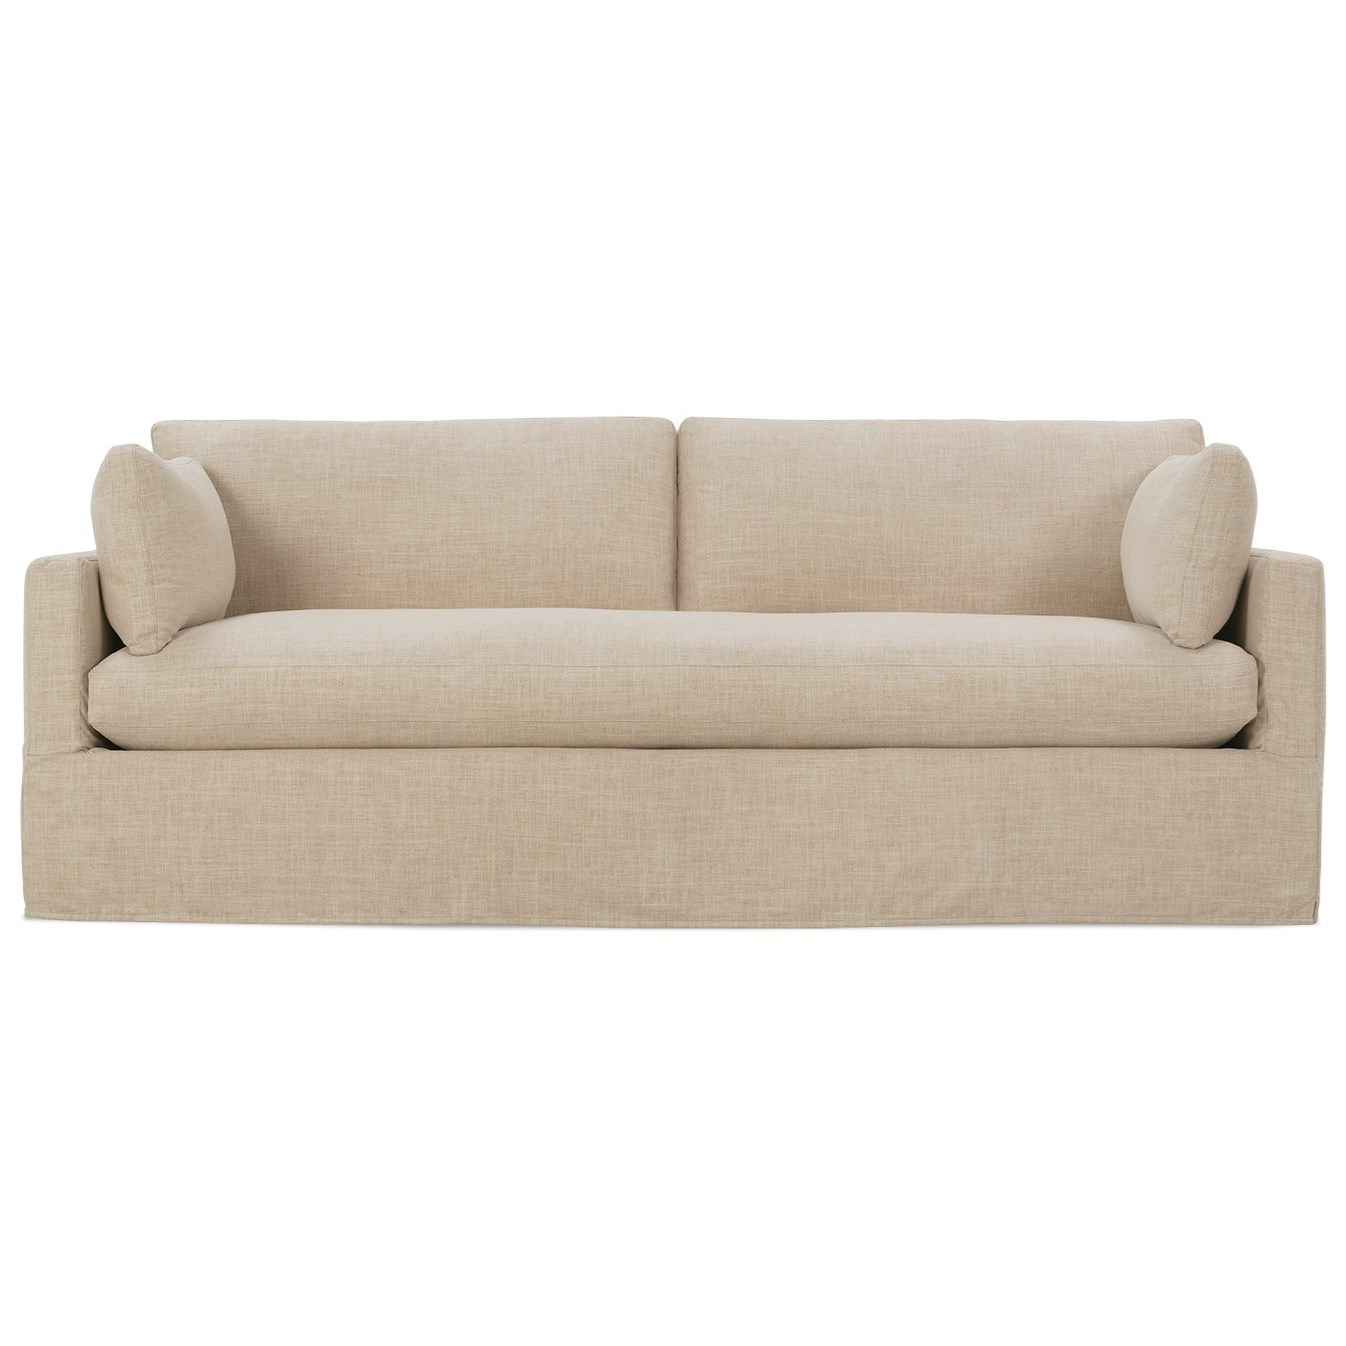 Sylvie Slip Covered Sofa by Robin Bruce at Saugerties Furniture Mart